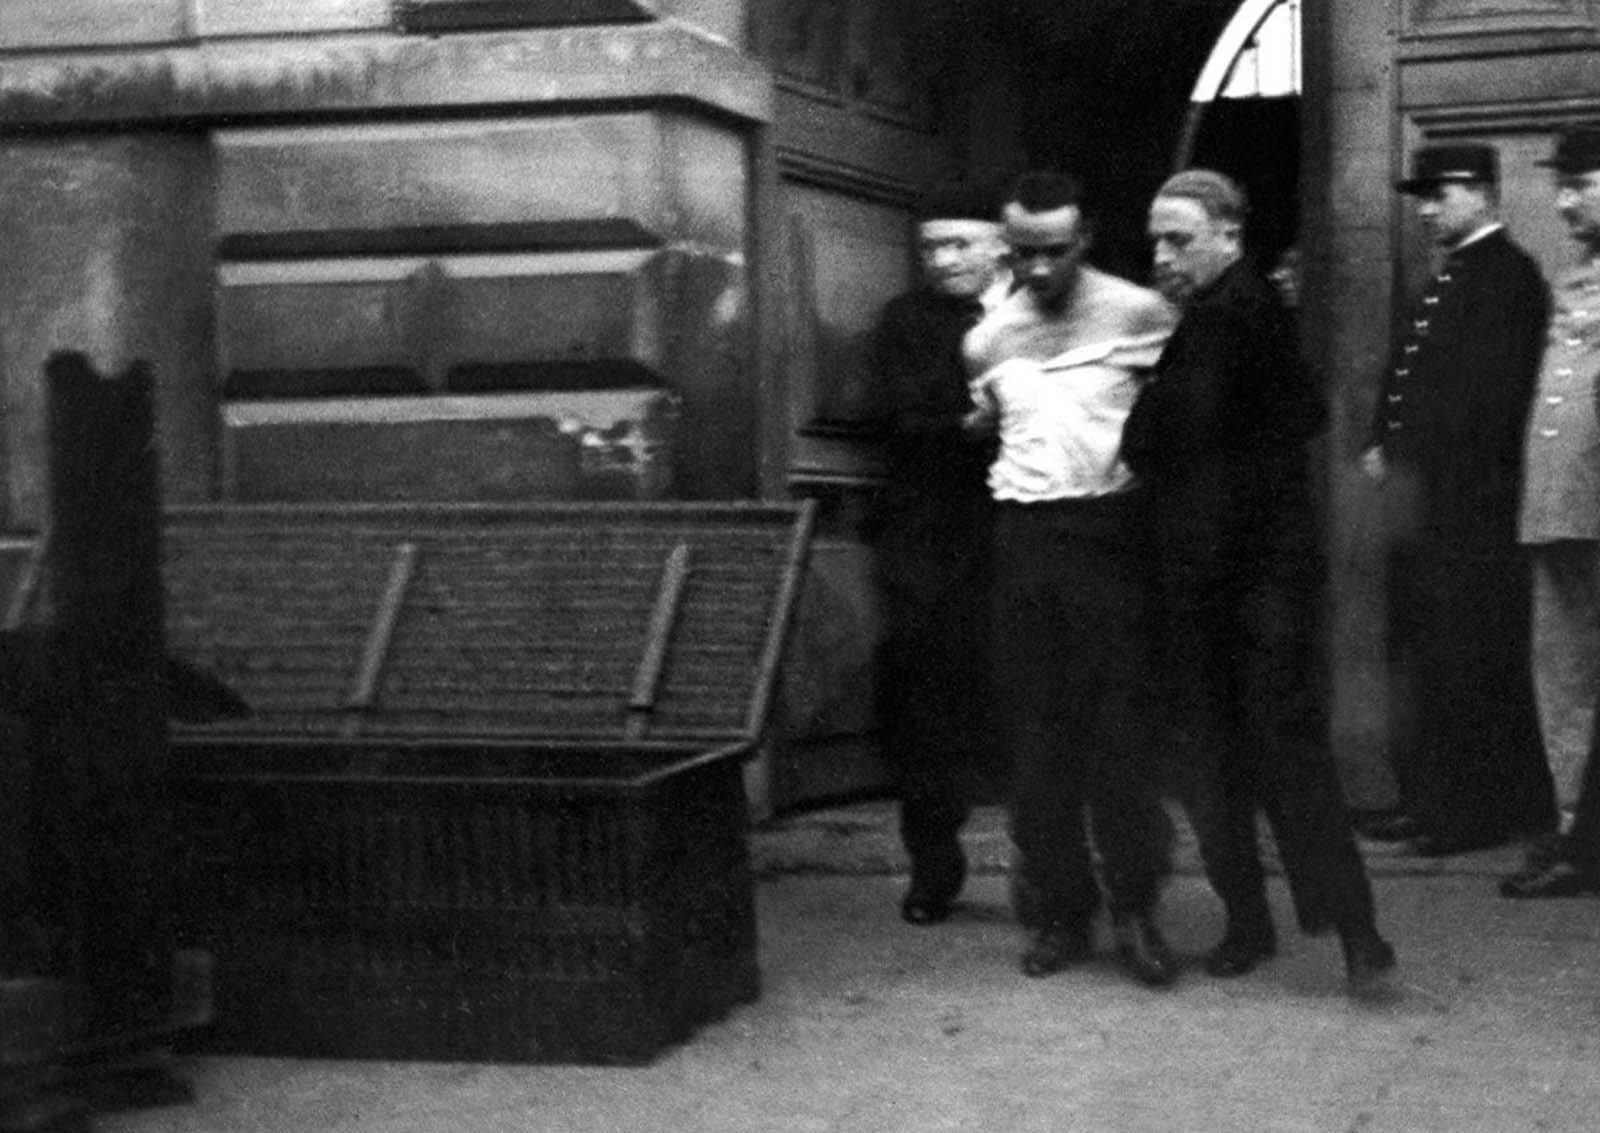 Weidmann is led to the guillotine, passing by the trunk that will be used to transport his body.